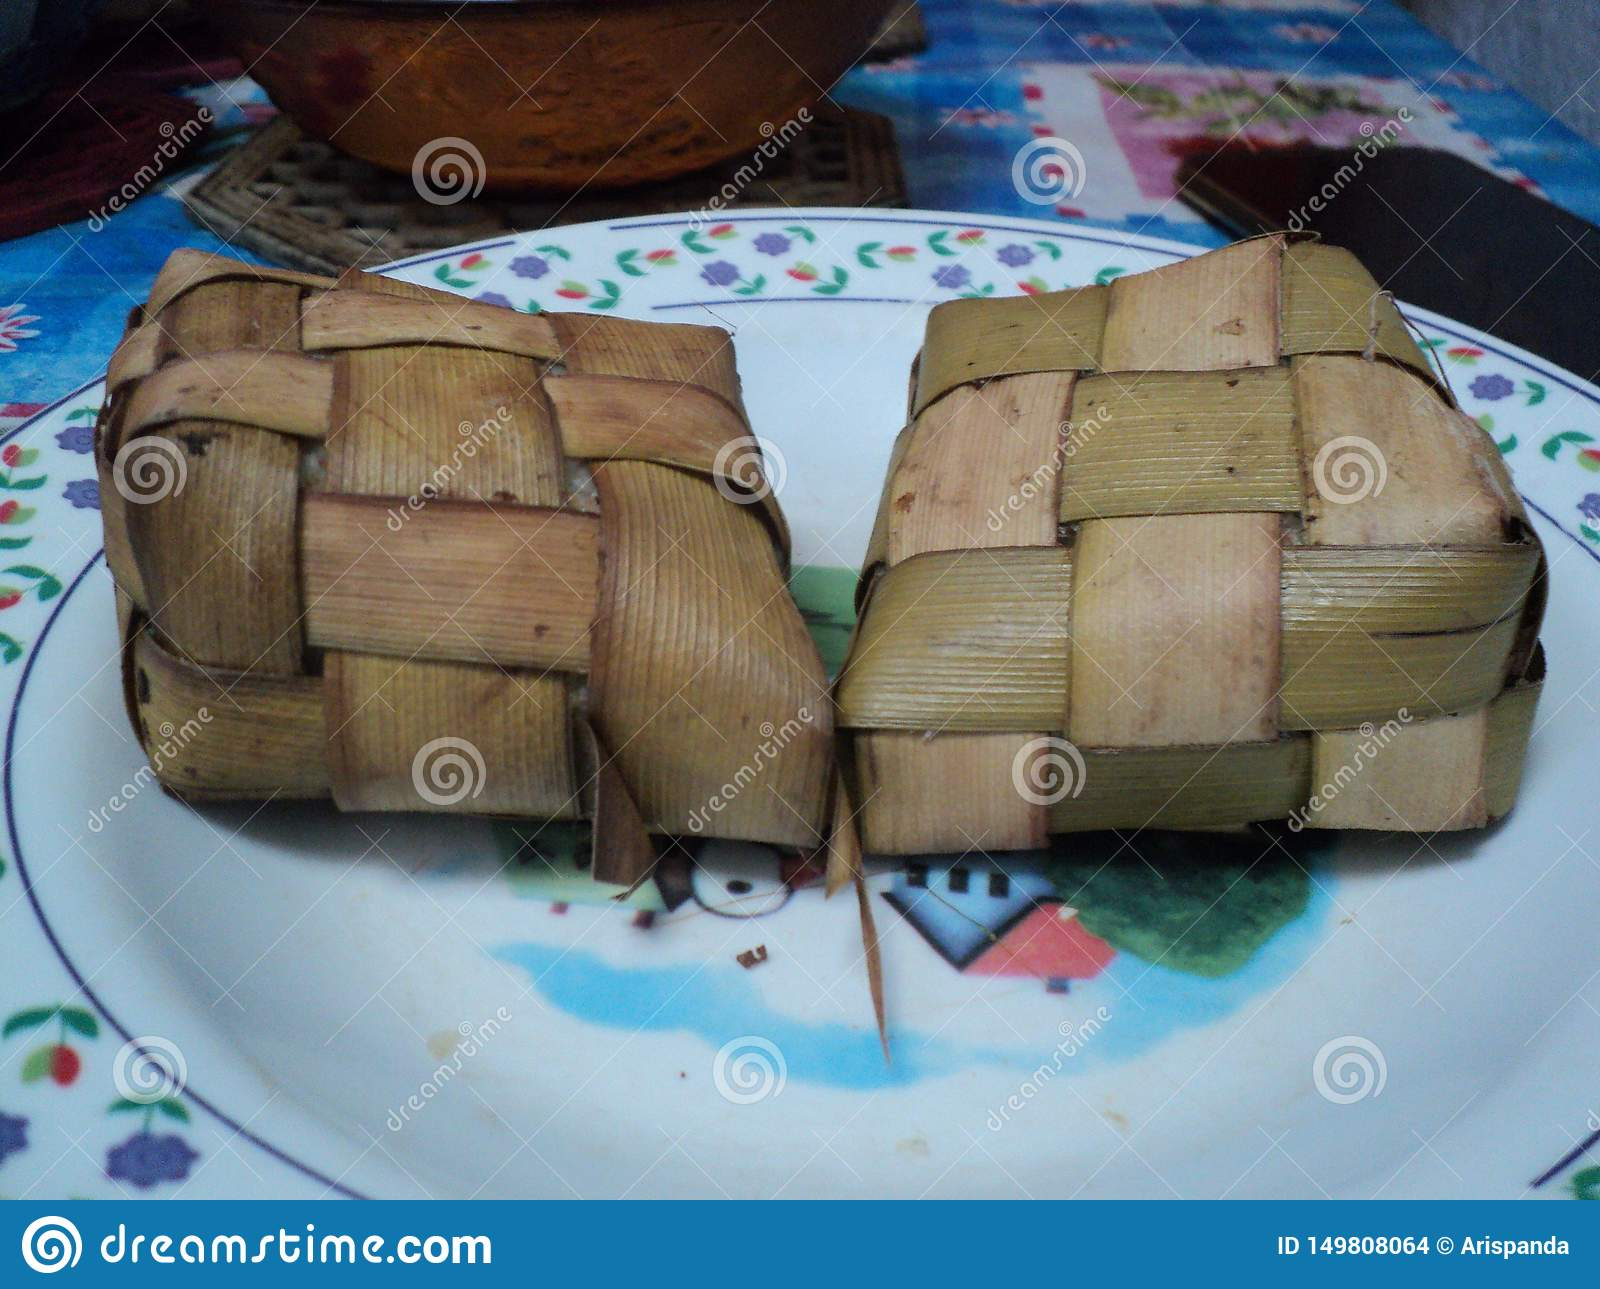 Ketupat typical food when Eid al-Fitr